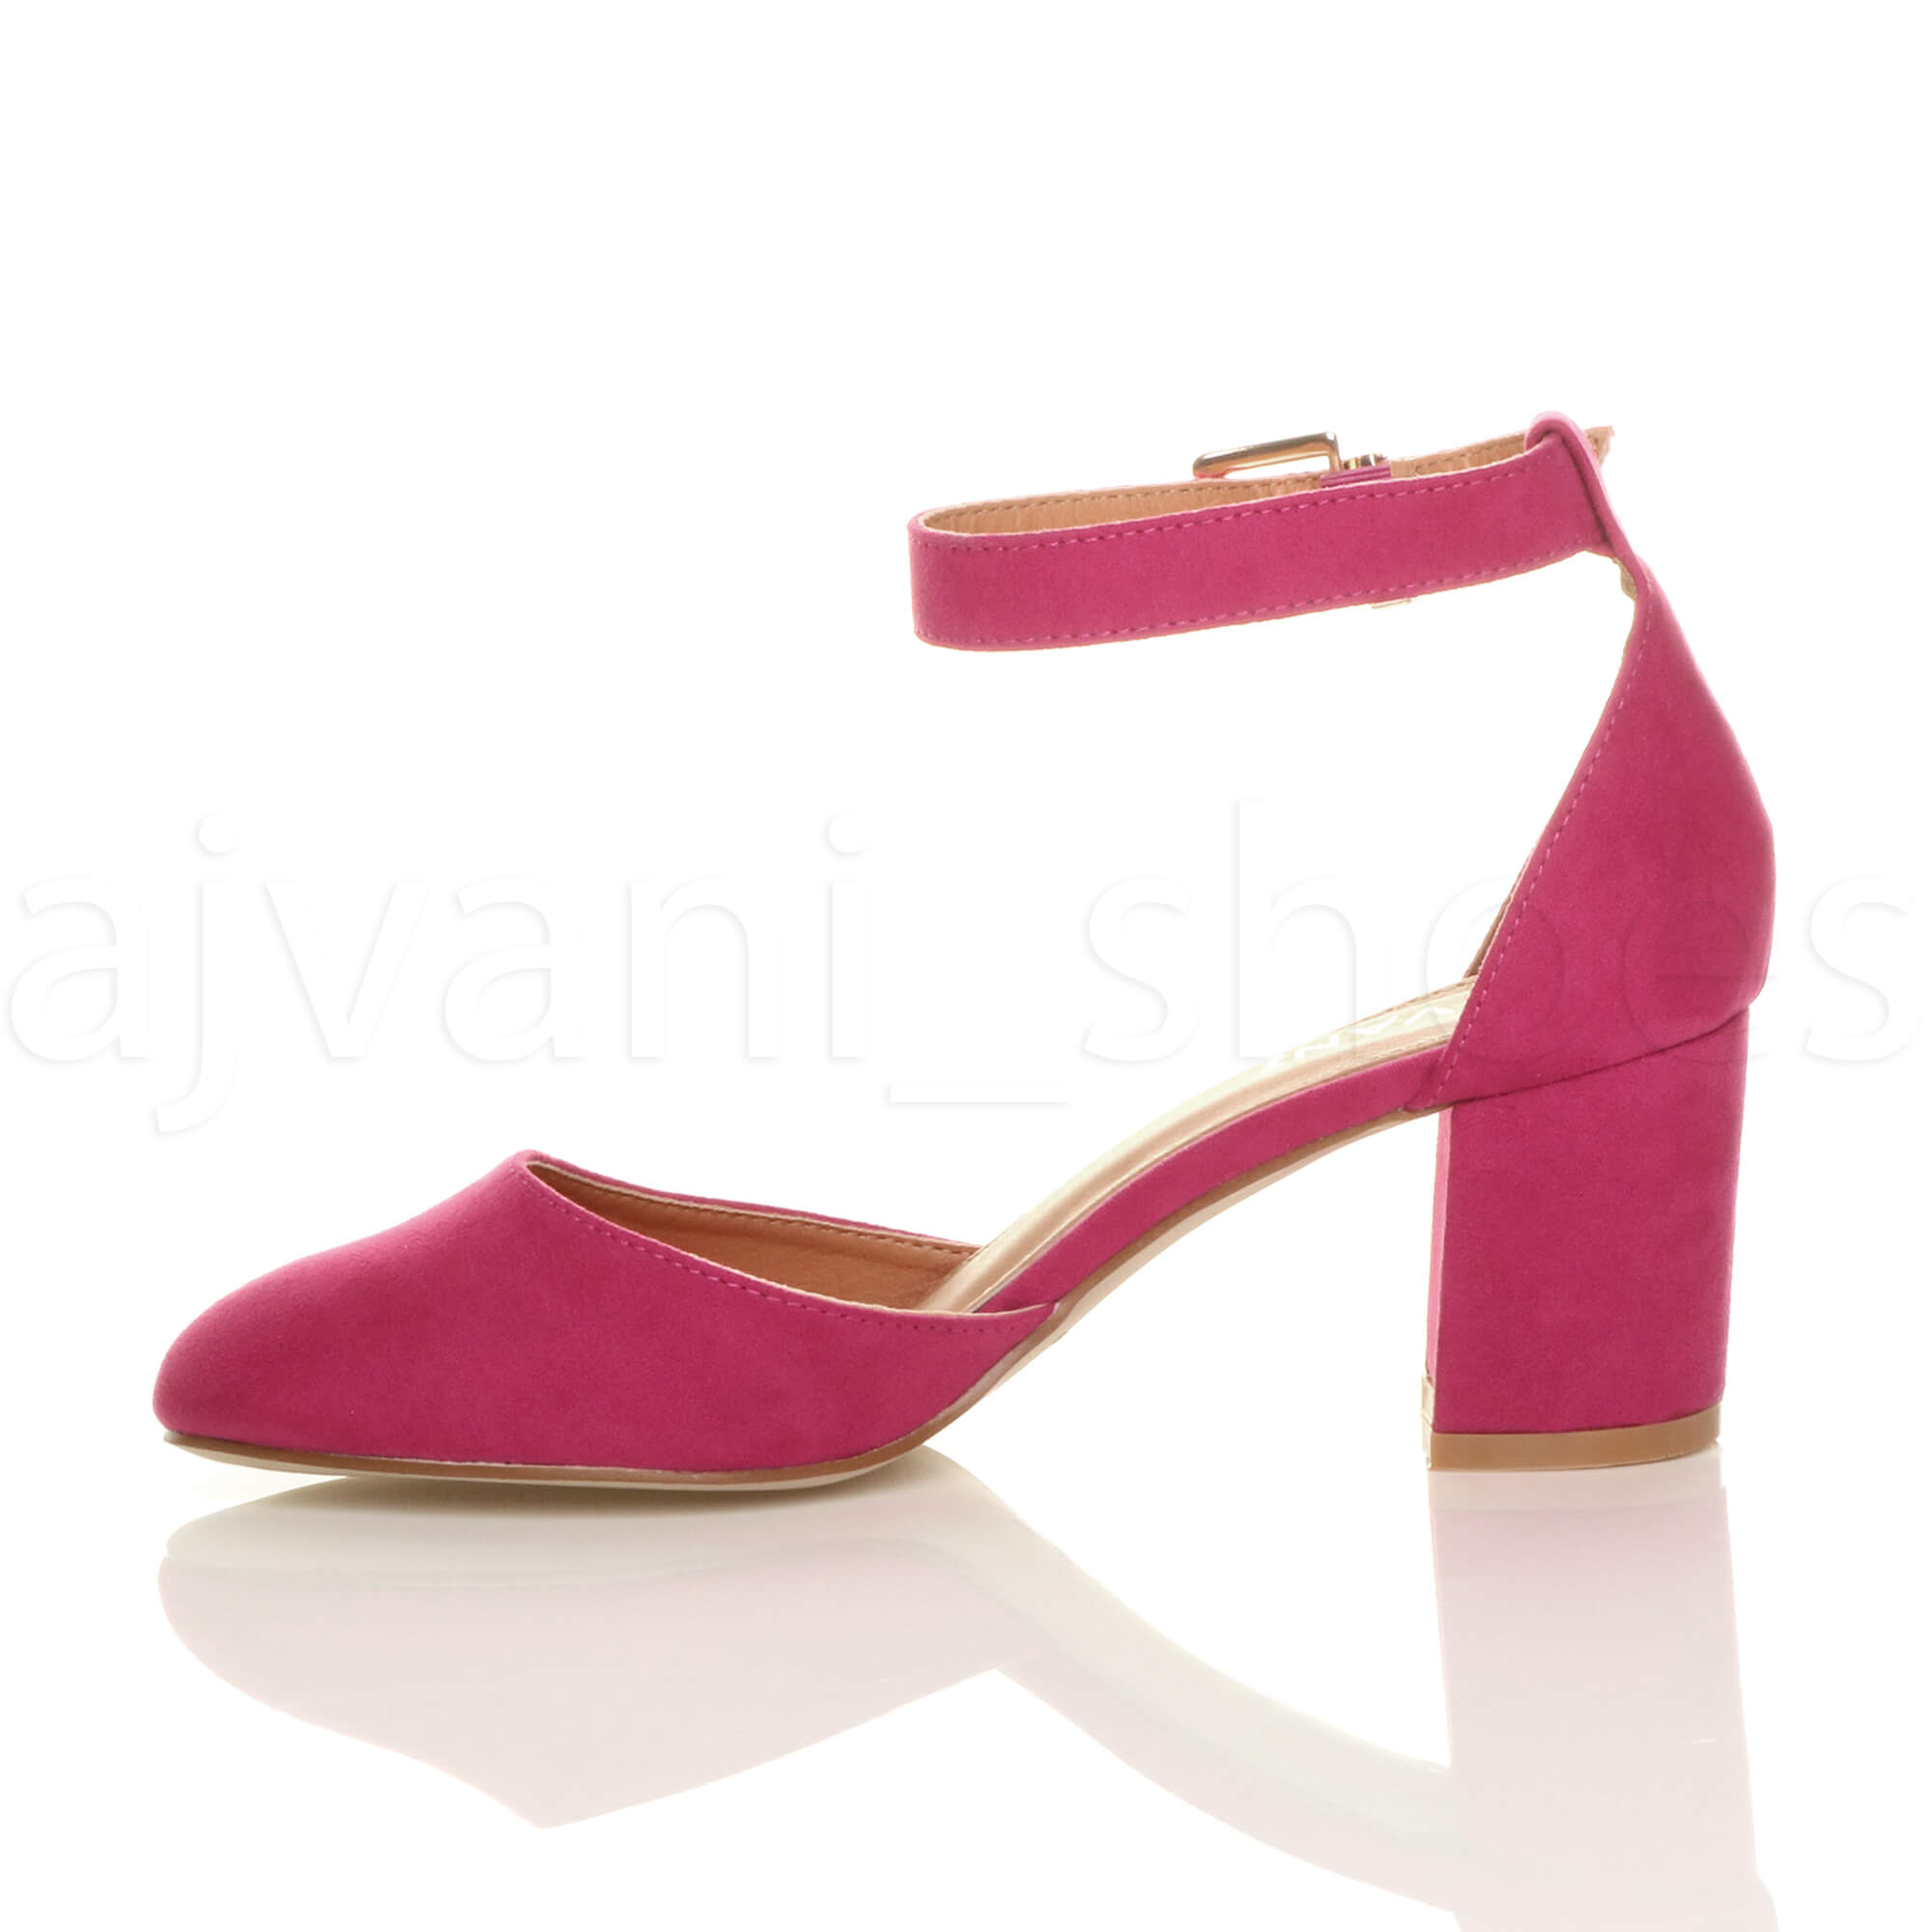 WOMENS-LADIES-LOW-MID-BLOCK-HEEL-ANKLE-STRAP-MARY-JANE-COURT-SHOES-SANDALS-SIZE thumbnail 44